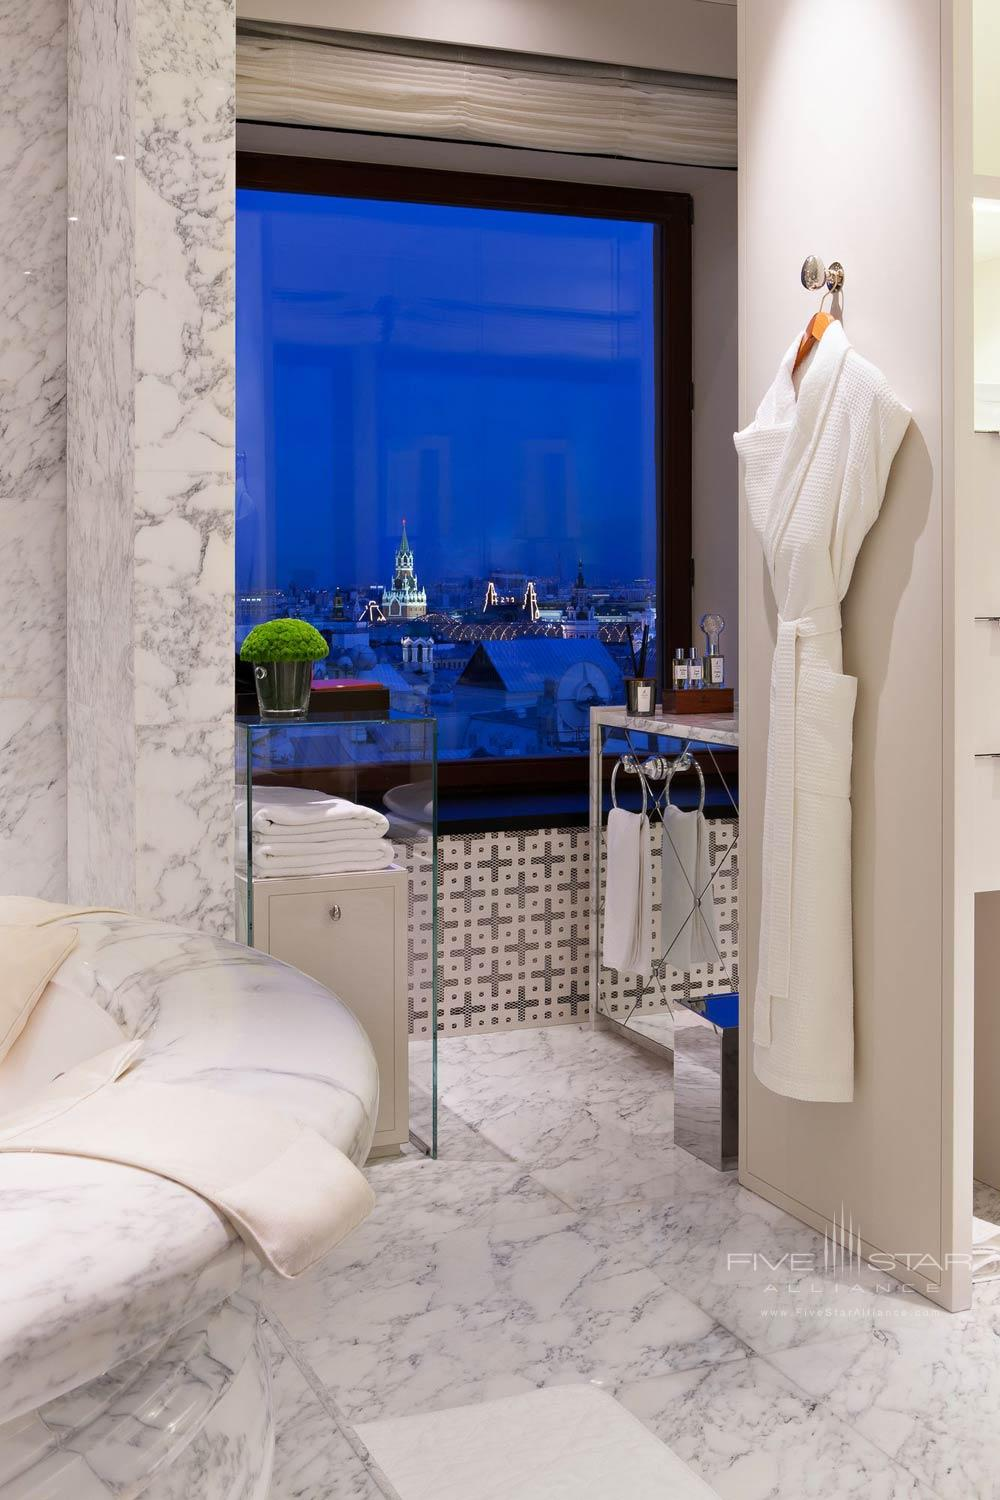 Penthouse Suite Bath at Ararat Park Hyatt Moscow, Moscow, Russia